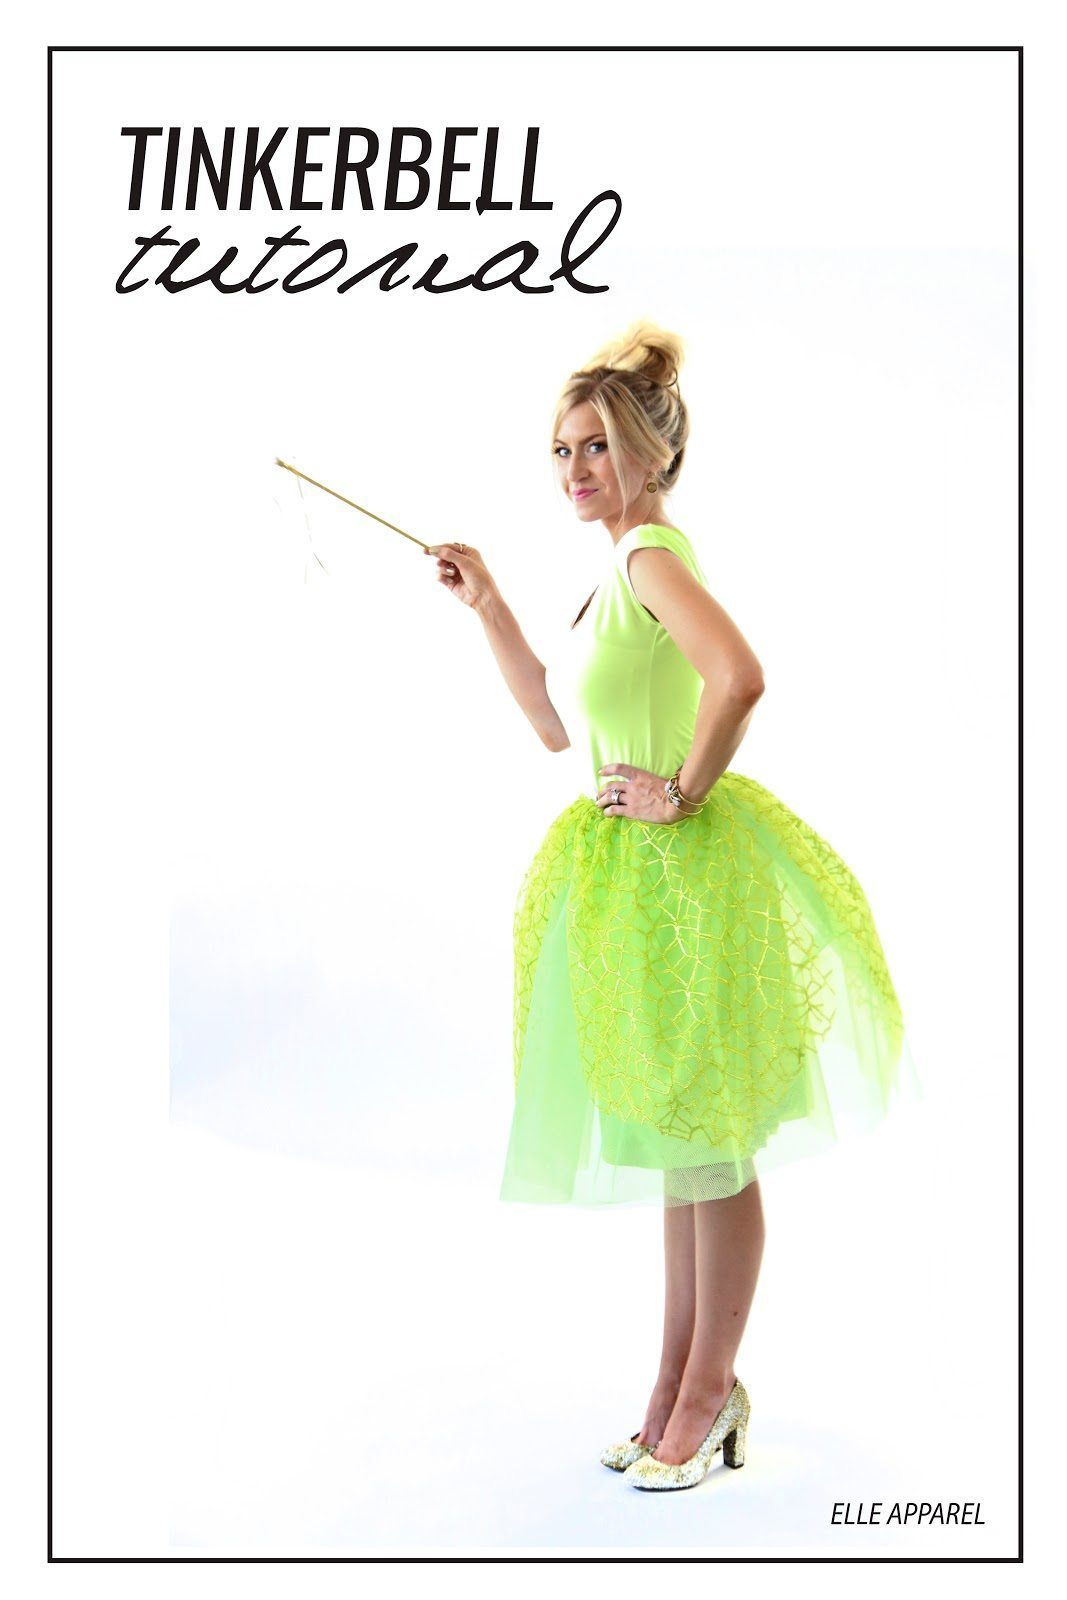 THE MODERN GIRLS HALLOWEEN WEEK: TINKERBELL COSTUME